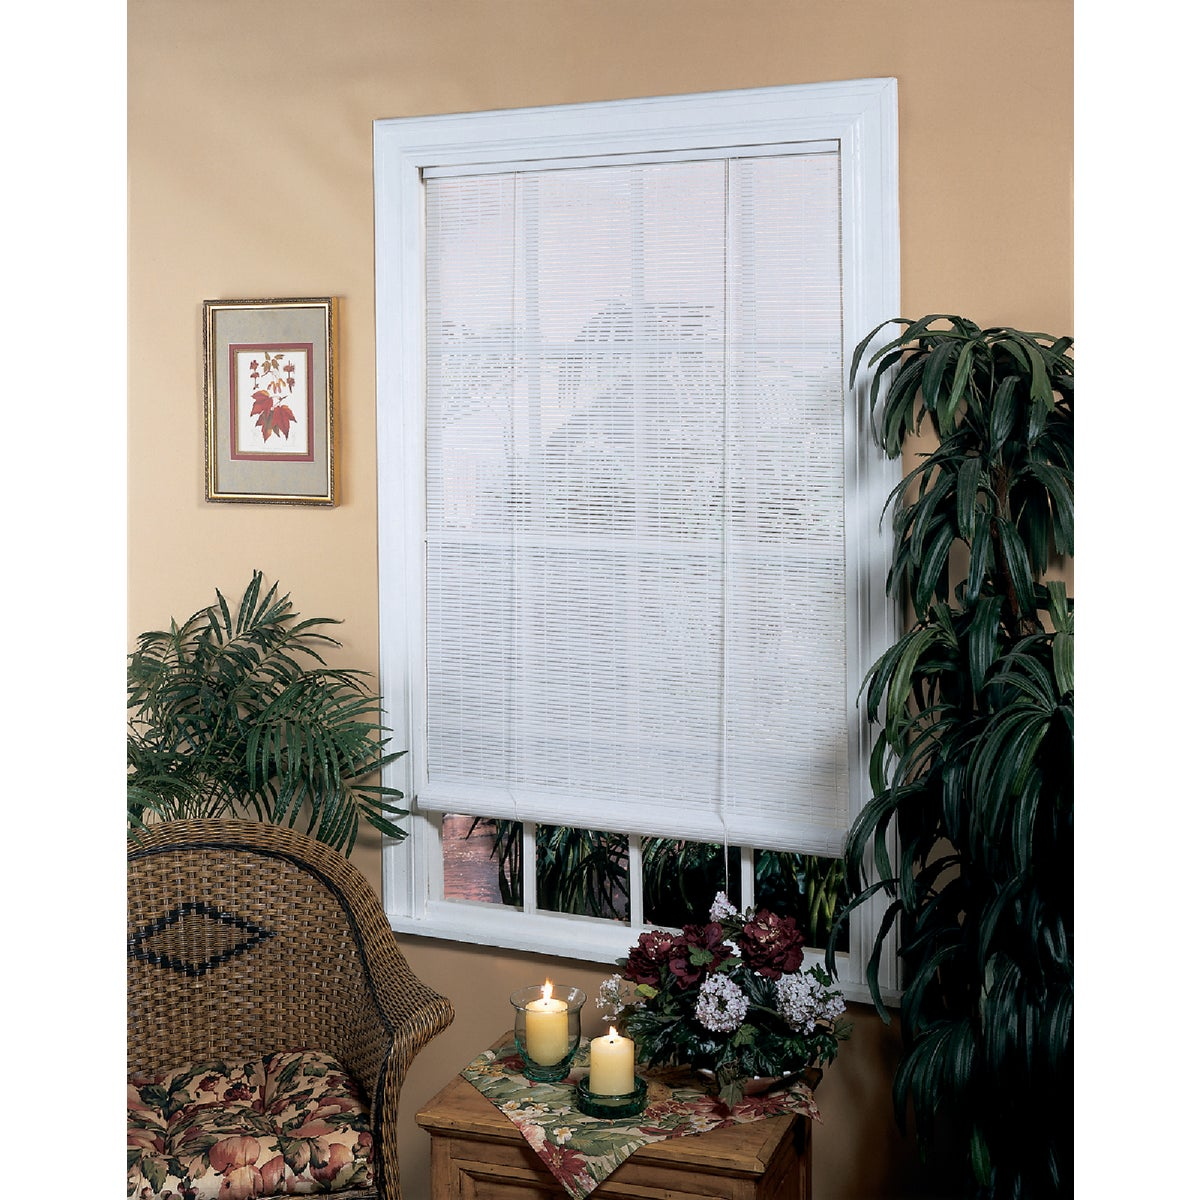 96X72 WHT ROLL-UP BLIND - 0321086 by Lewis Hyman